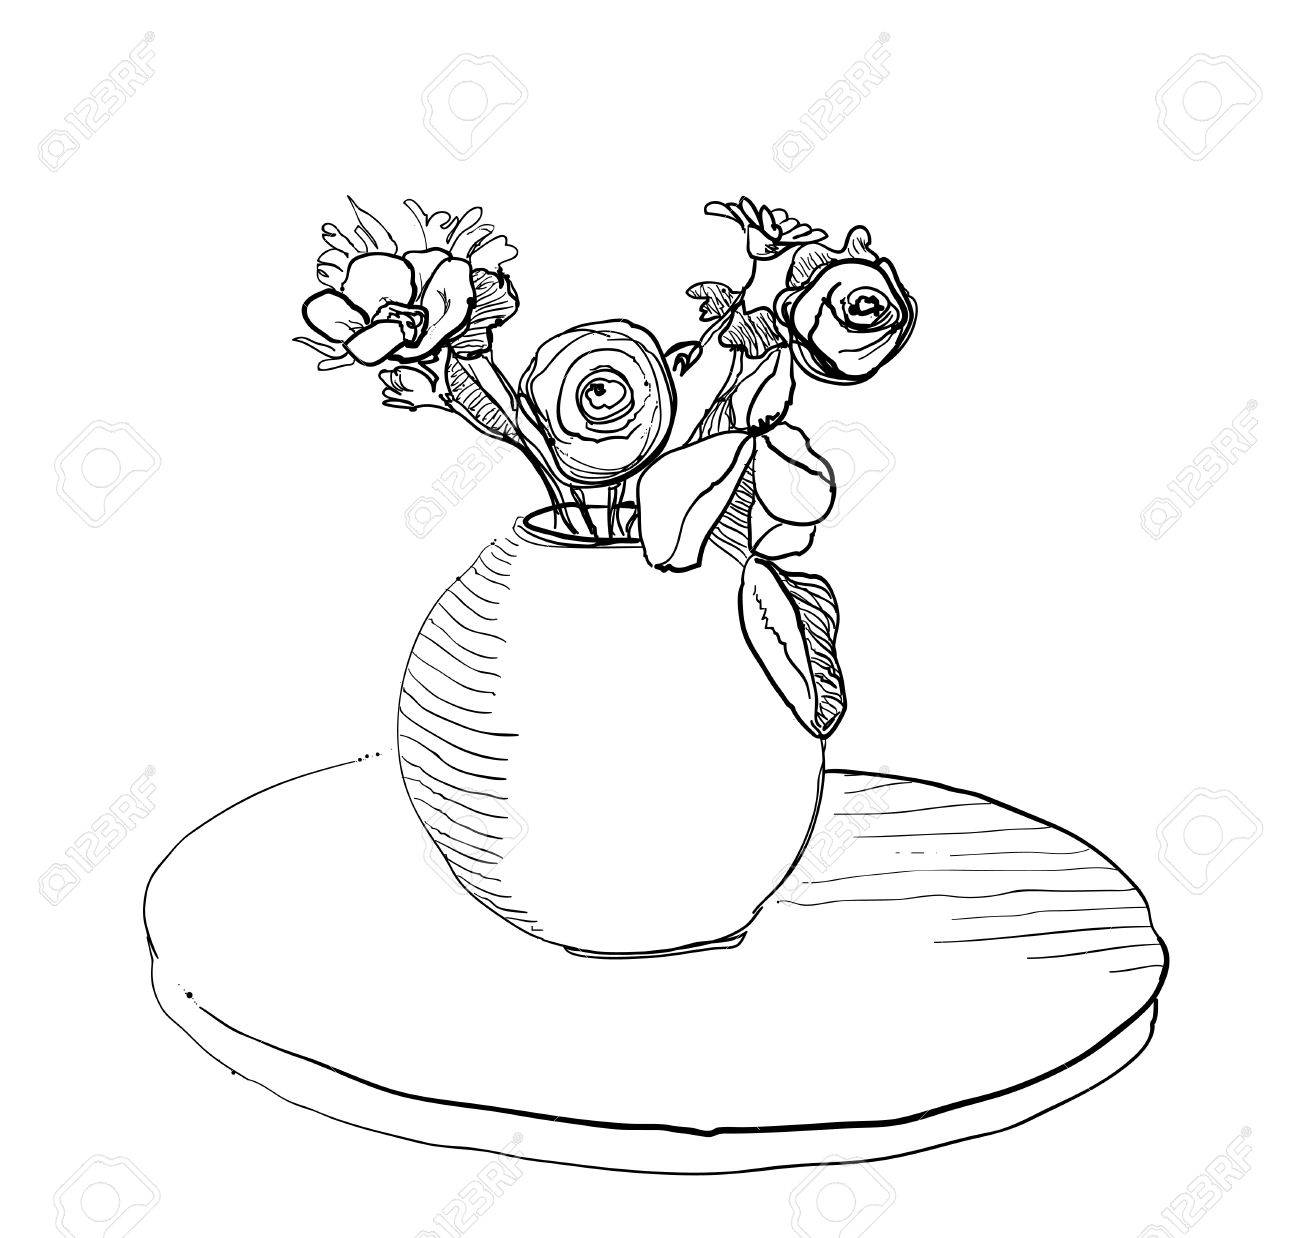 Bouquet Flowers In Vase Hand Drawn Black Lines Isolated On White ...